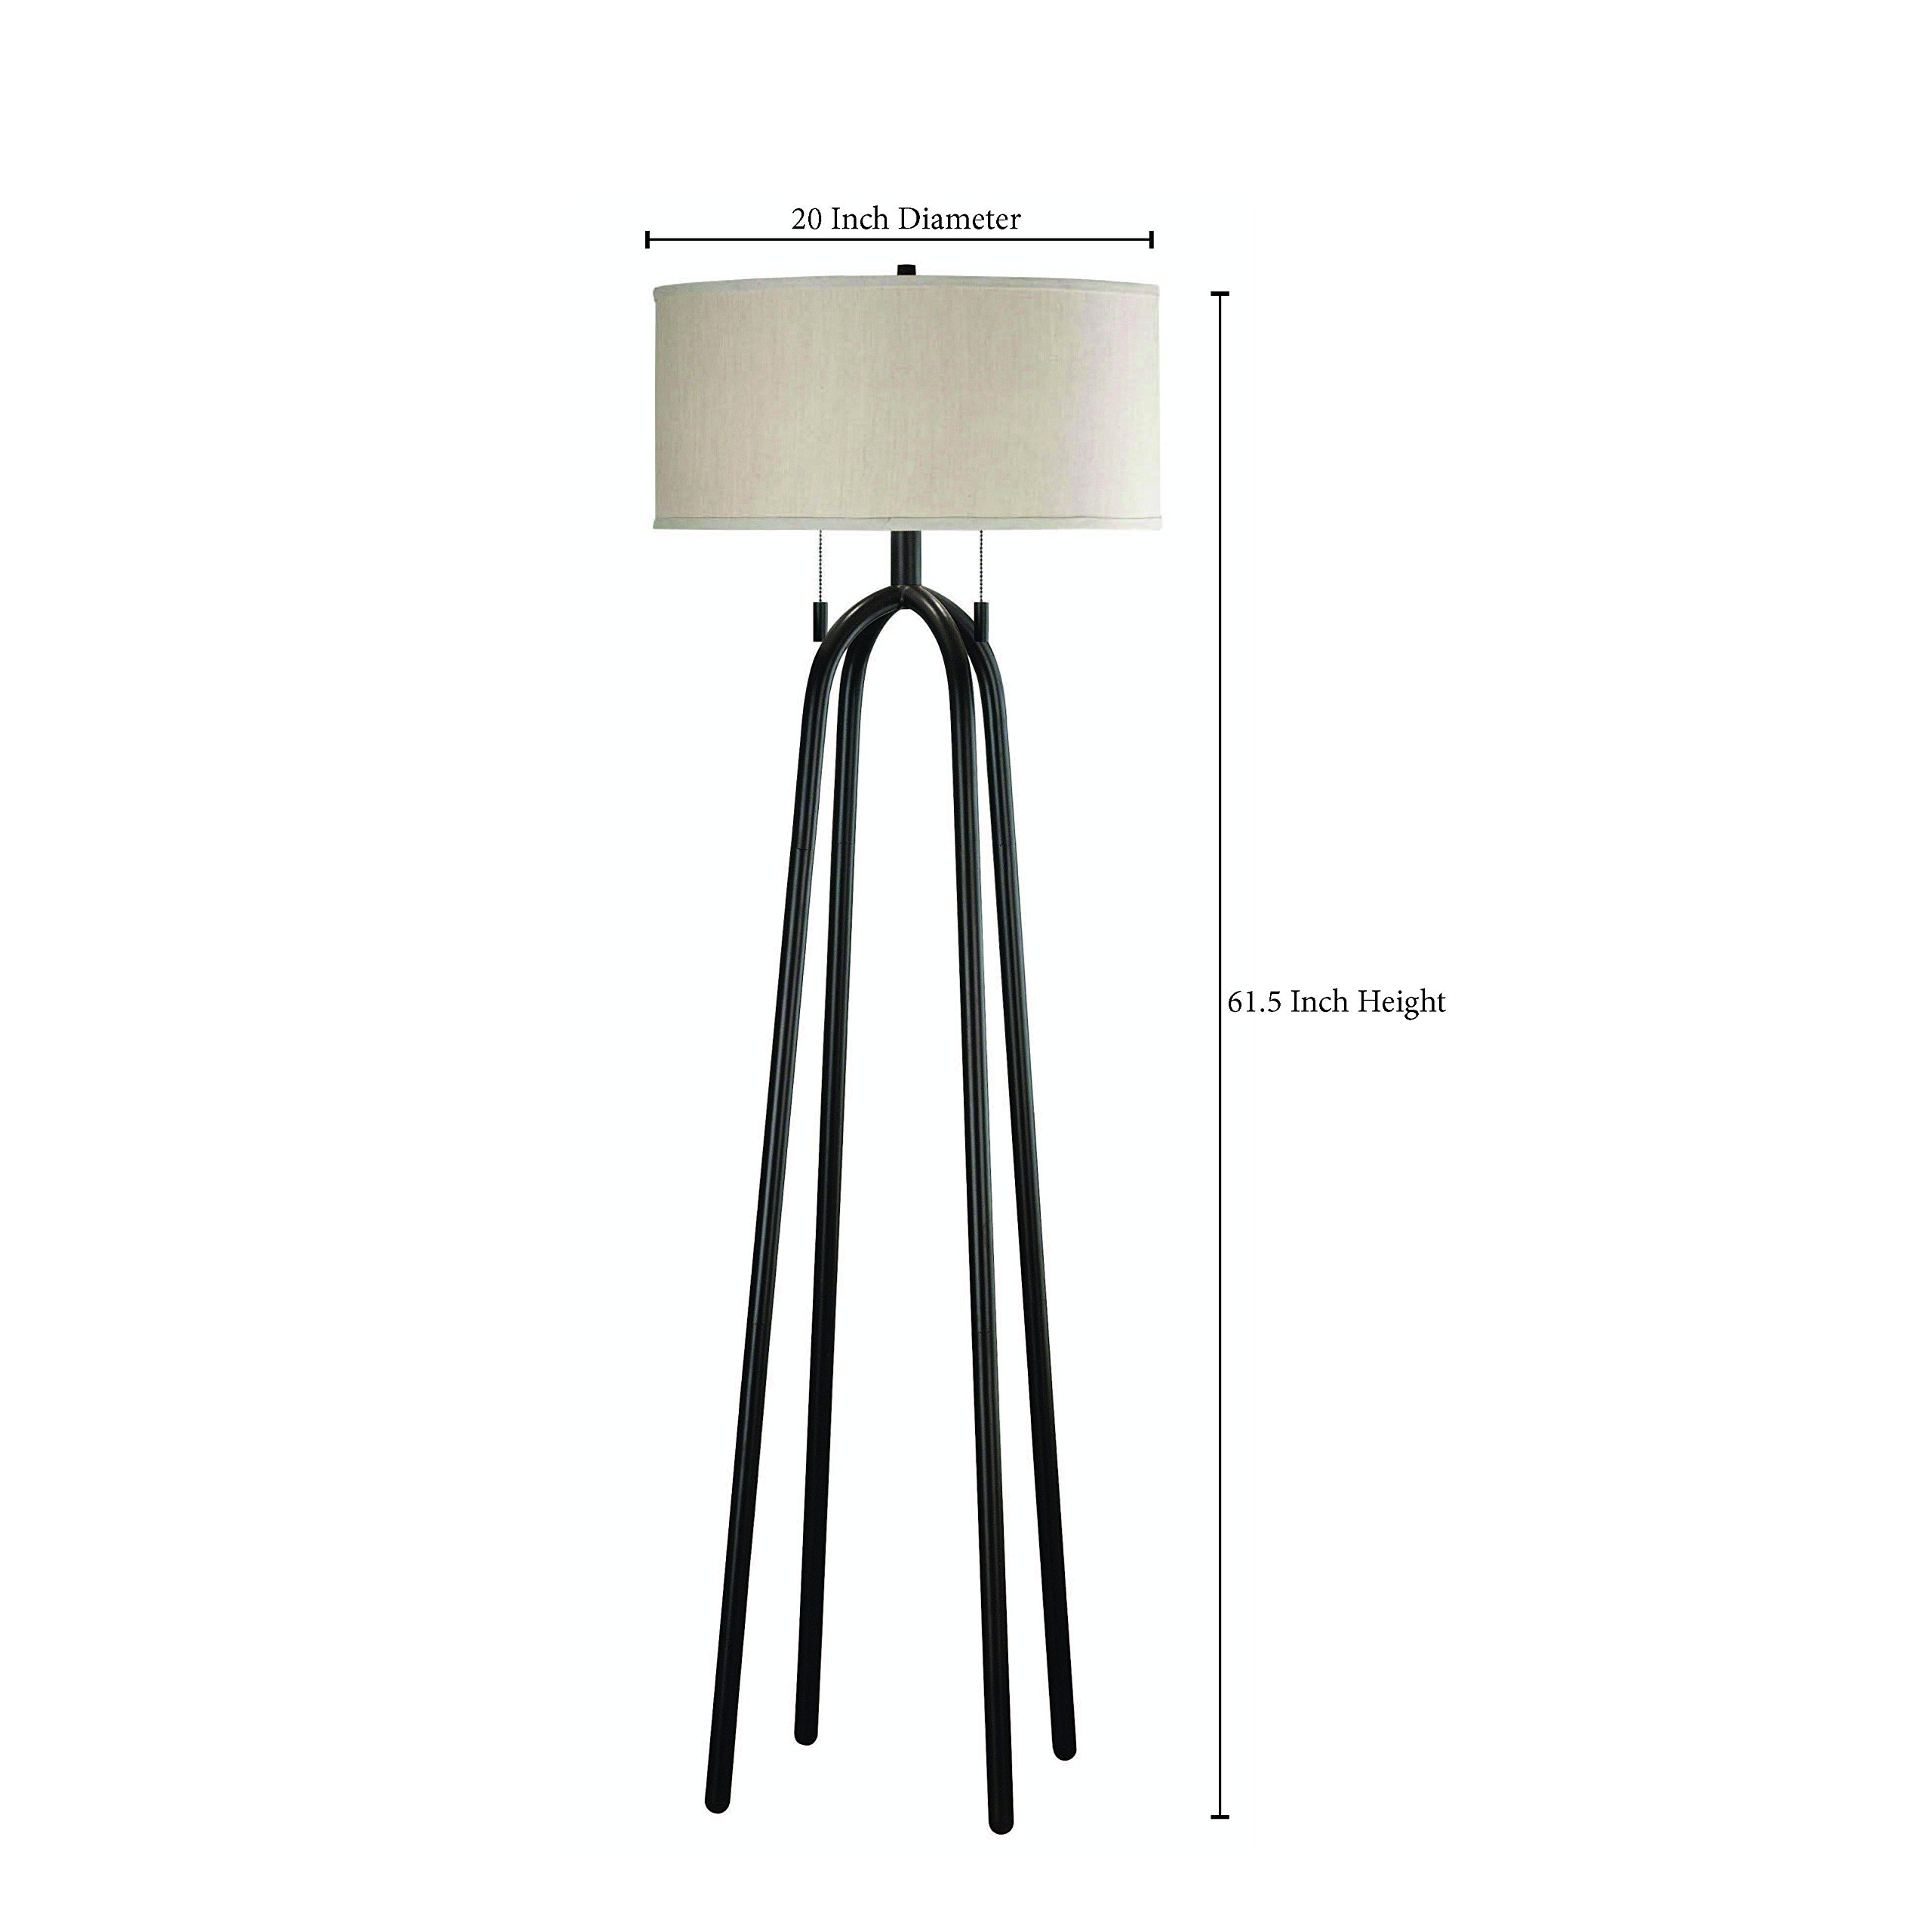 Kenroy Home Quadratic 61 Inch Floor Lamp In Oil Rubbed Bronze Finish With Tan Drum Shade by Kenroy Home